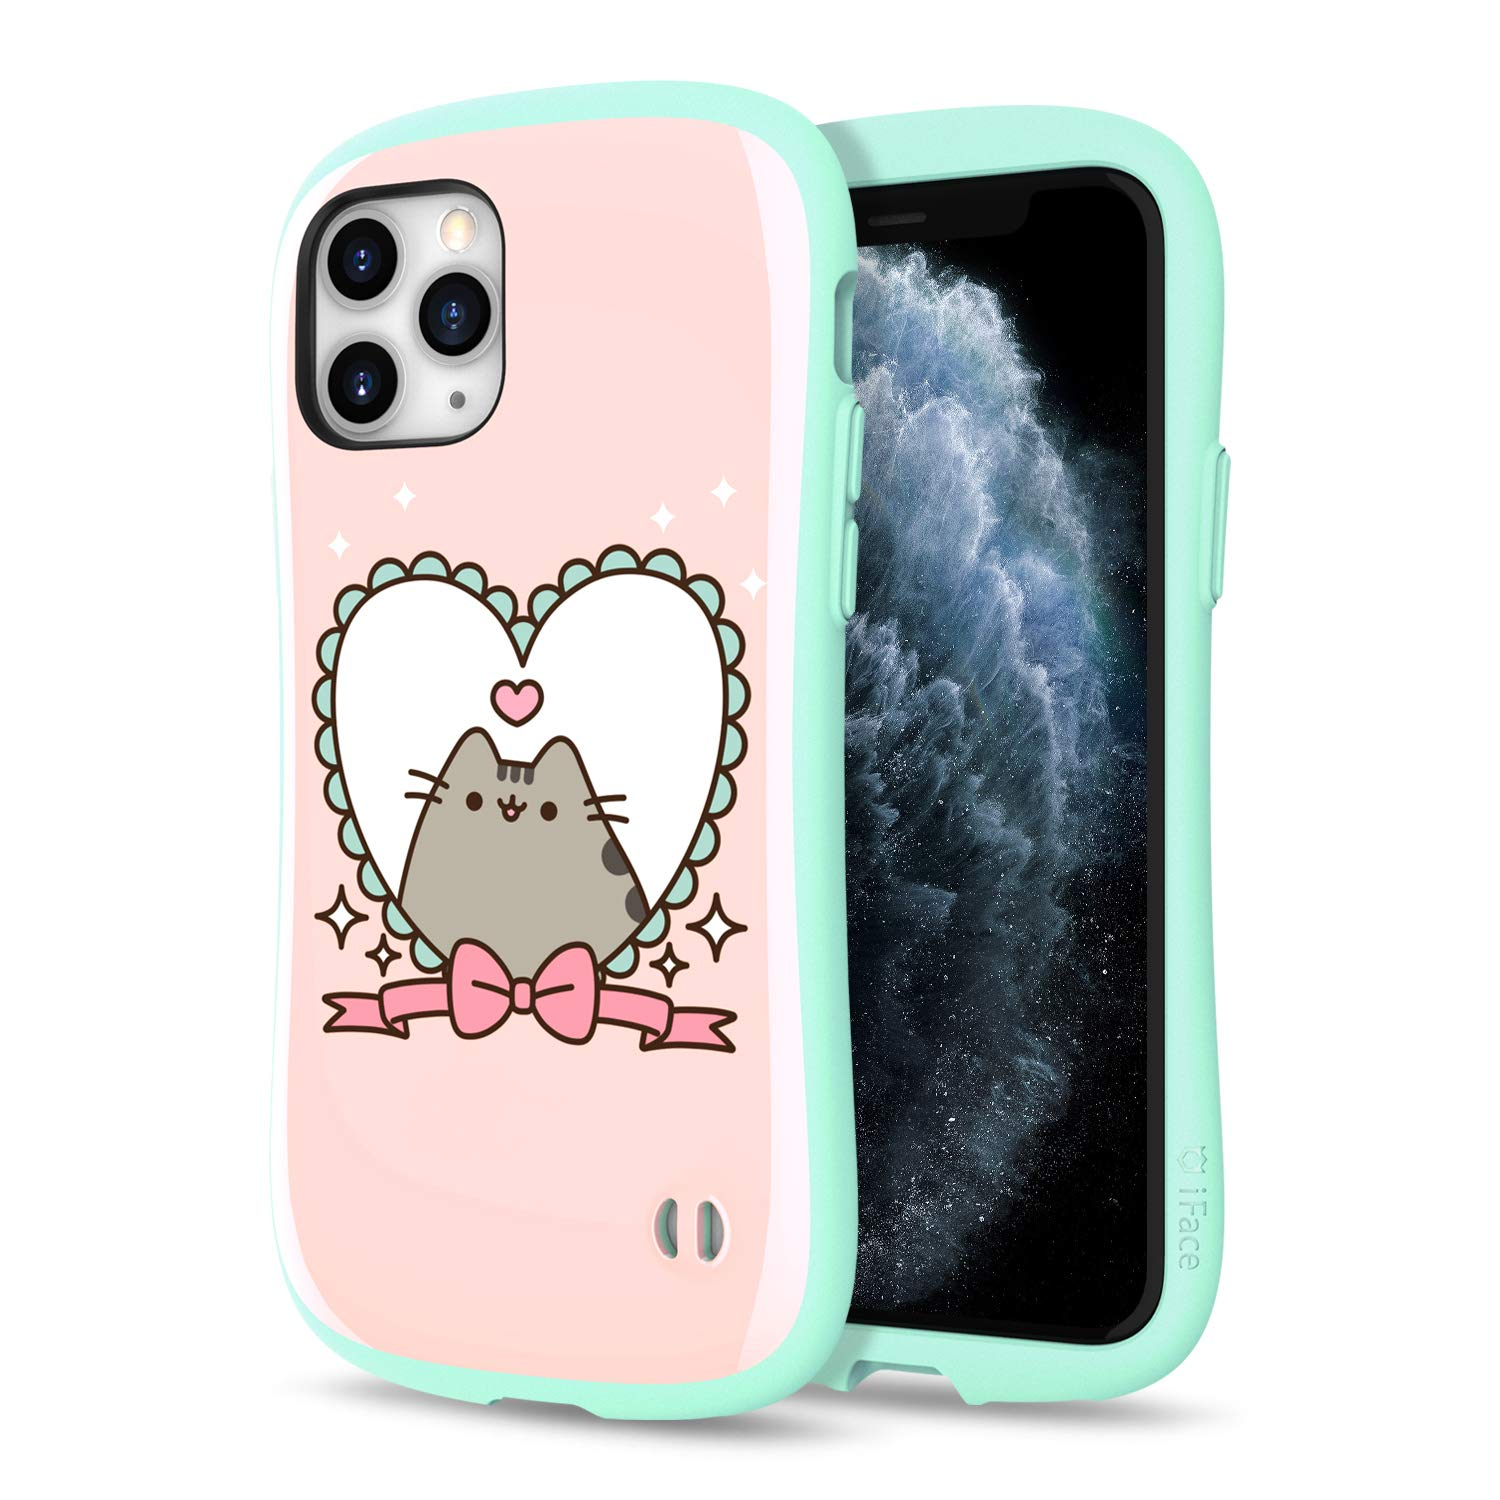 [2019] Case for iPhone 11 Pro, iFace [First Class] Pusheen Cat Series Dual Layer Anti Shock Fit Air Cushioned [TPU + PC] [Heavy Duty Protection], Pusheen Heart Frame